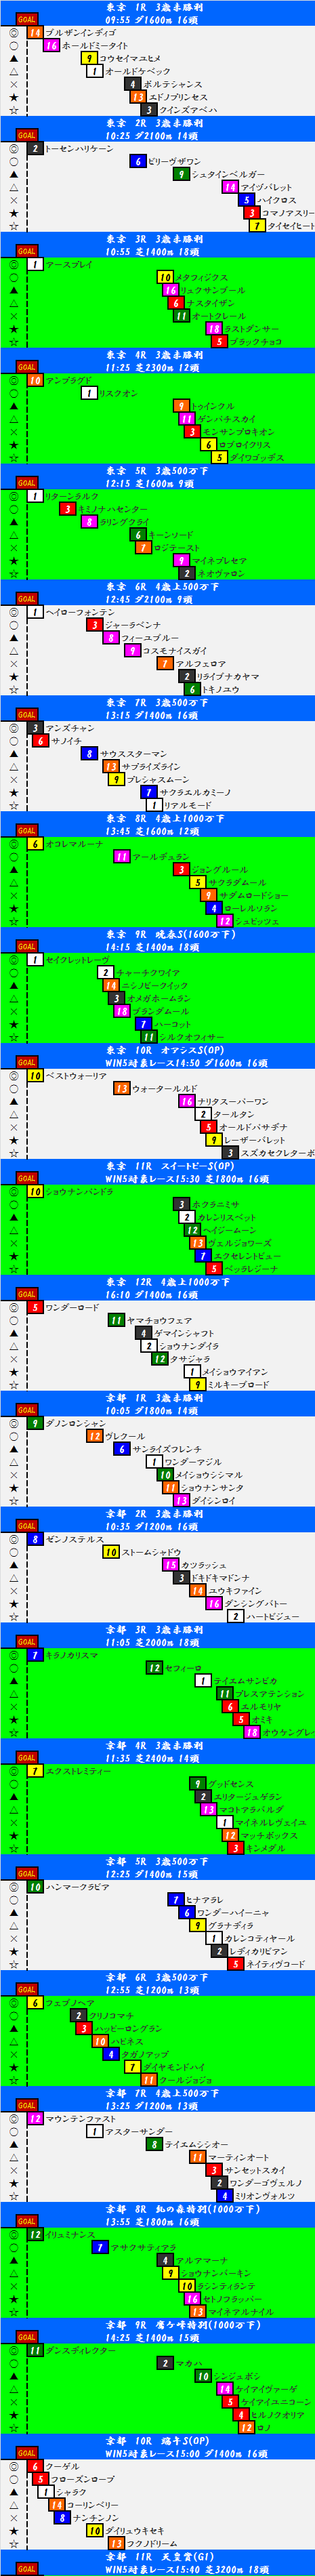 201405041.png